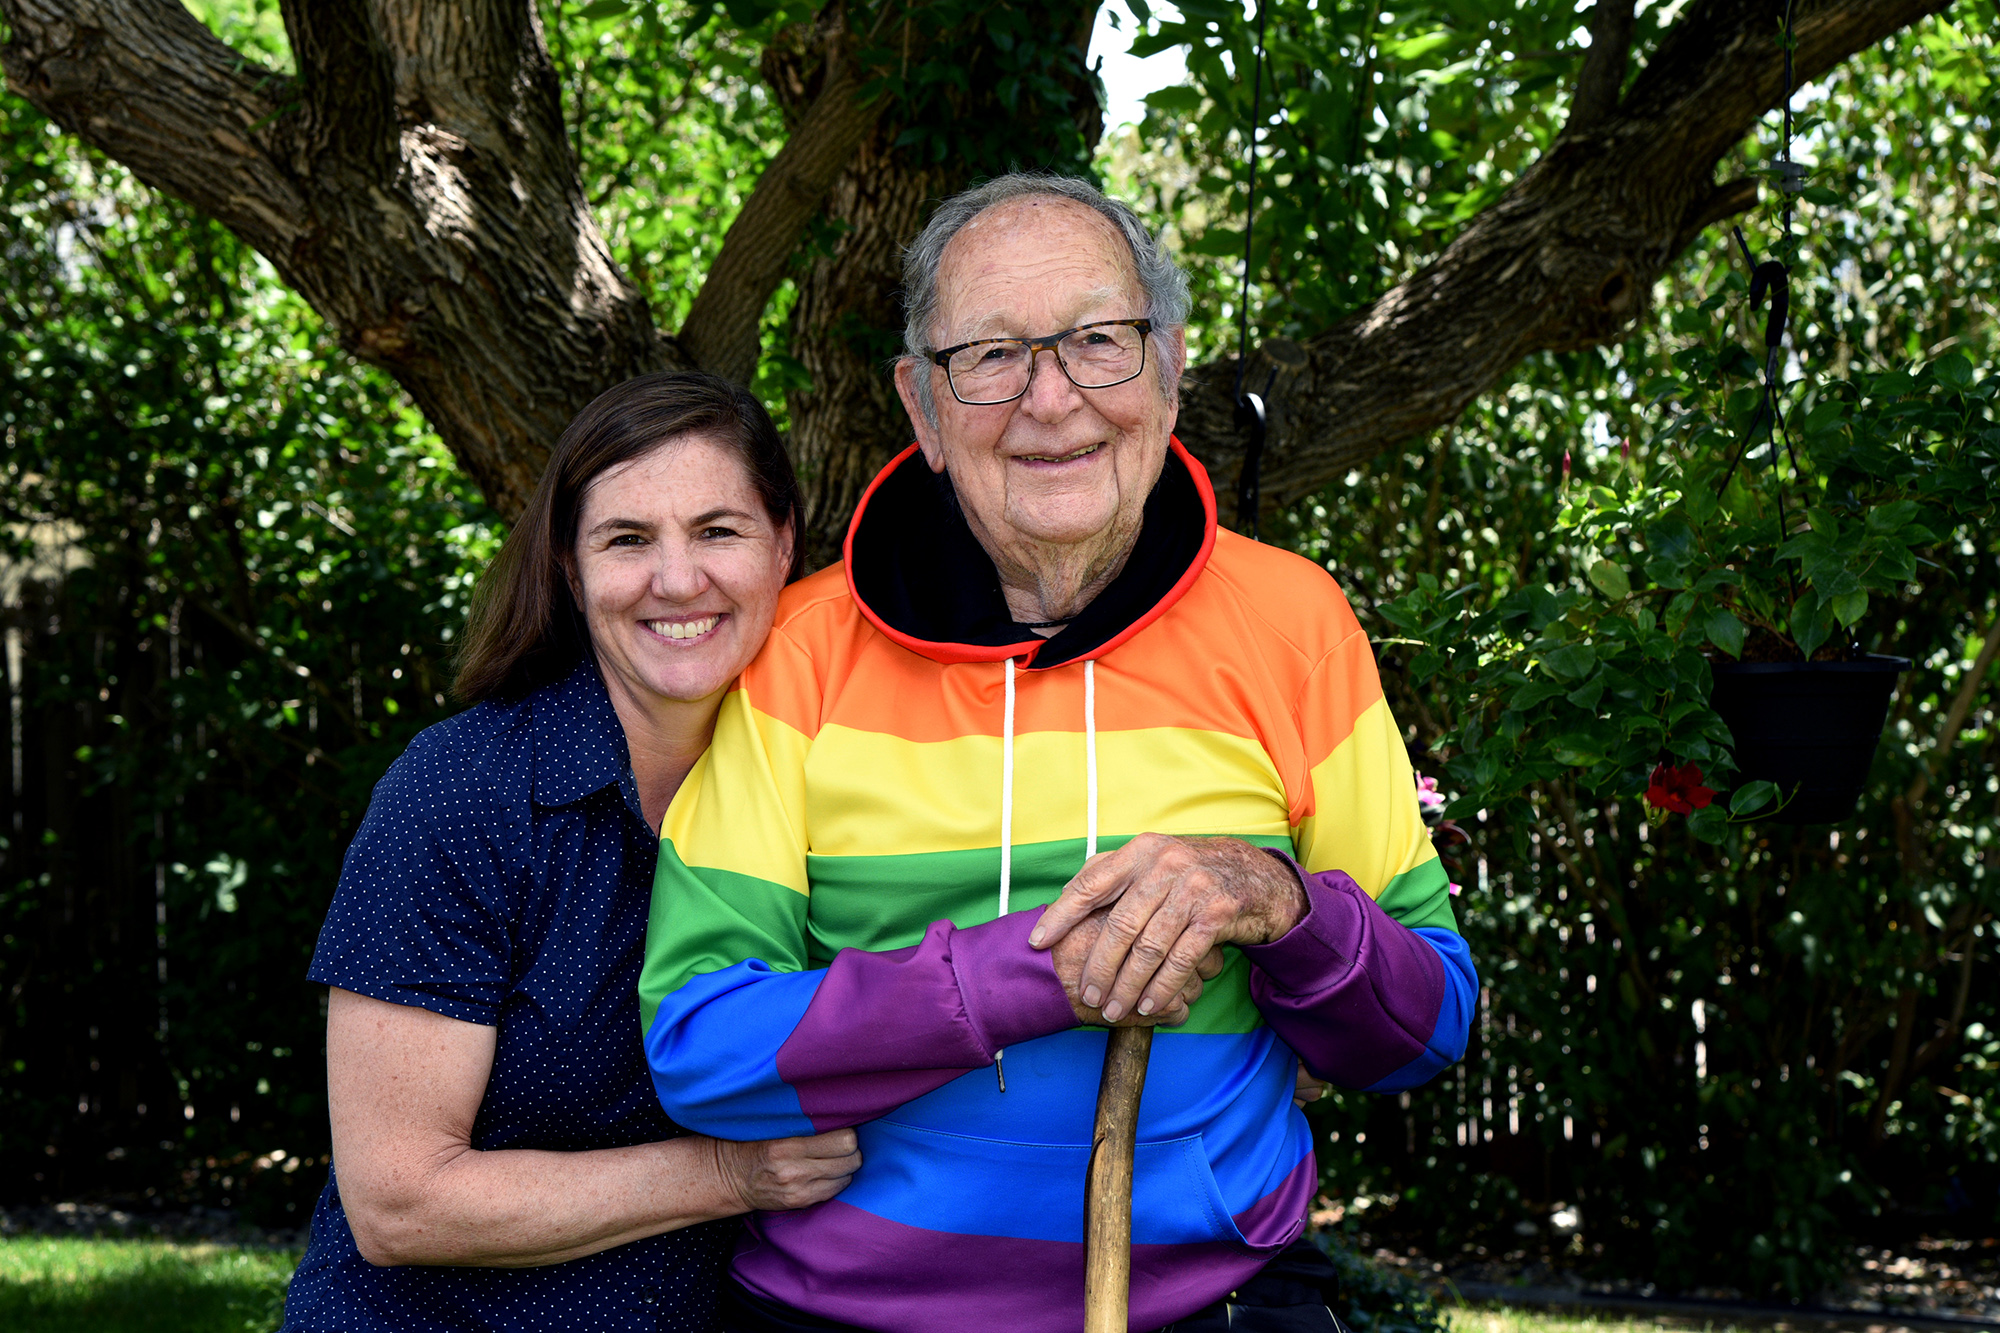 Ken Felts and his daughter, Rebecca Mayes, at home in Arvada. Now 90, Felts came out to his daughter, then on his public Facebook page in June, Pride month. He's received thousands of supportive messages from around the world.